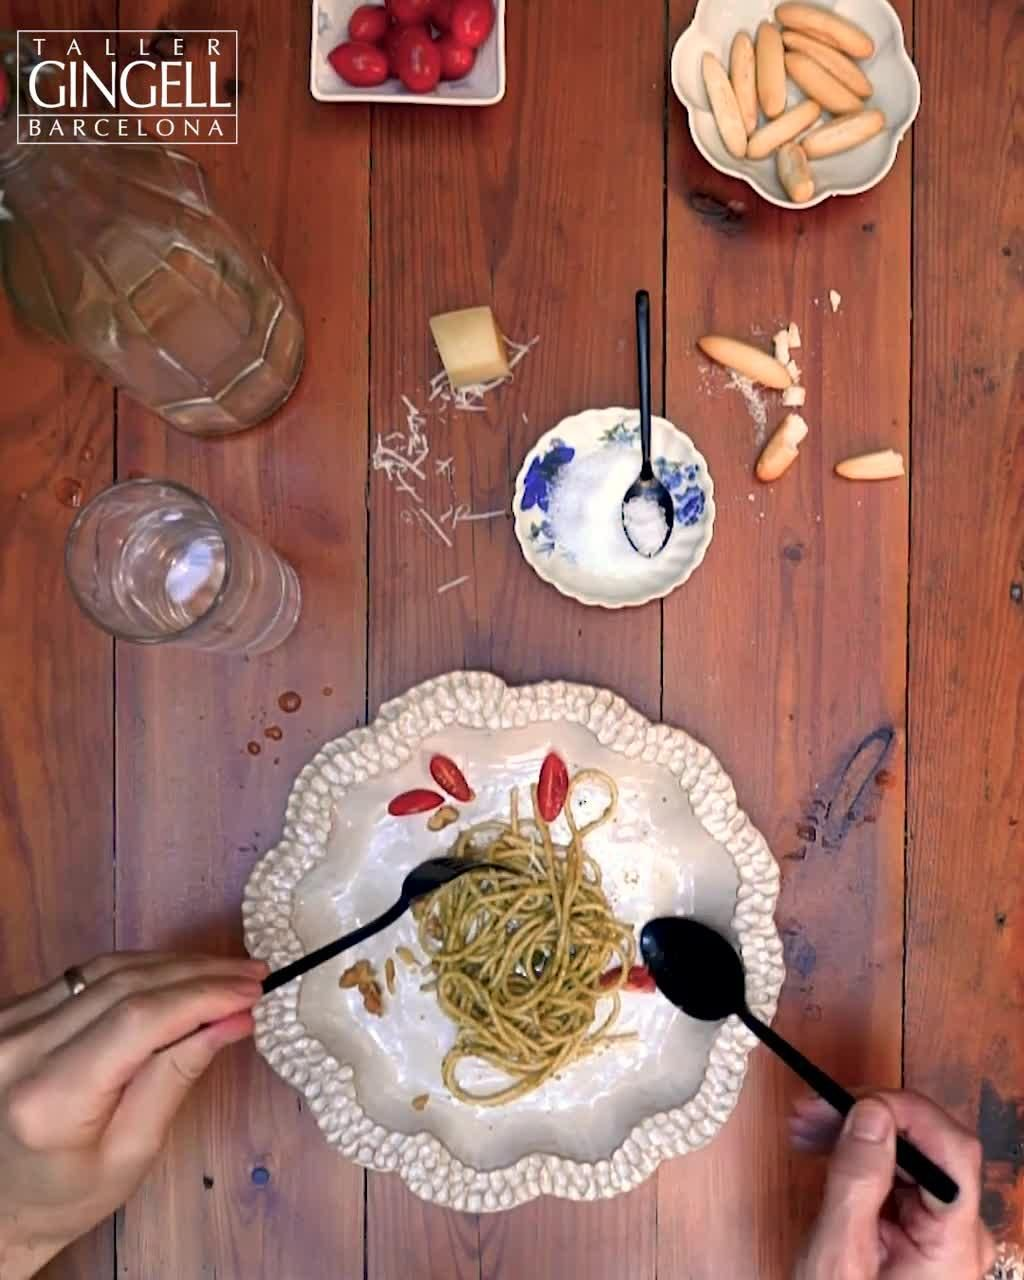 Delicious pasta 🍝  and pesto with some fresh basil 🌿 , tomatoes 🍅 , and crushed walnuts. Add in some rolly bread pipas and handmade contemporary ceramics you are ready to dine.  #pasta #pesto #walnuts #parmesan #cheese #delicious #yum #dinnerware #tableware #tablesetting #ceramics #onthetable #serveware #design #home  #tabletop #design #handmade #pipas #foodie #dinner #foodphotography #lunch #healthy #studiopottery #studioceramics #interiordesign #barcelona #stoneware #functionalceramics